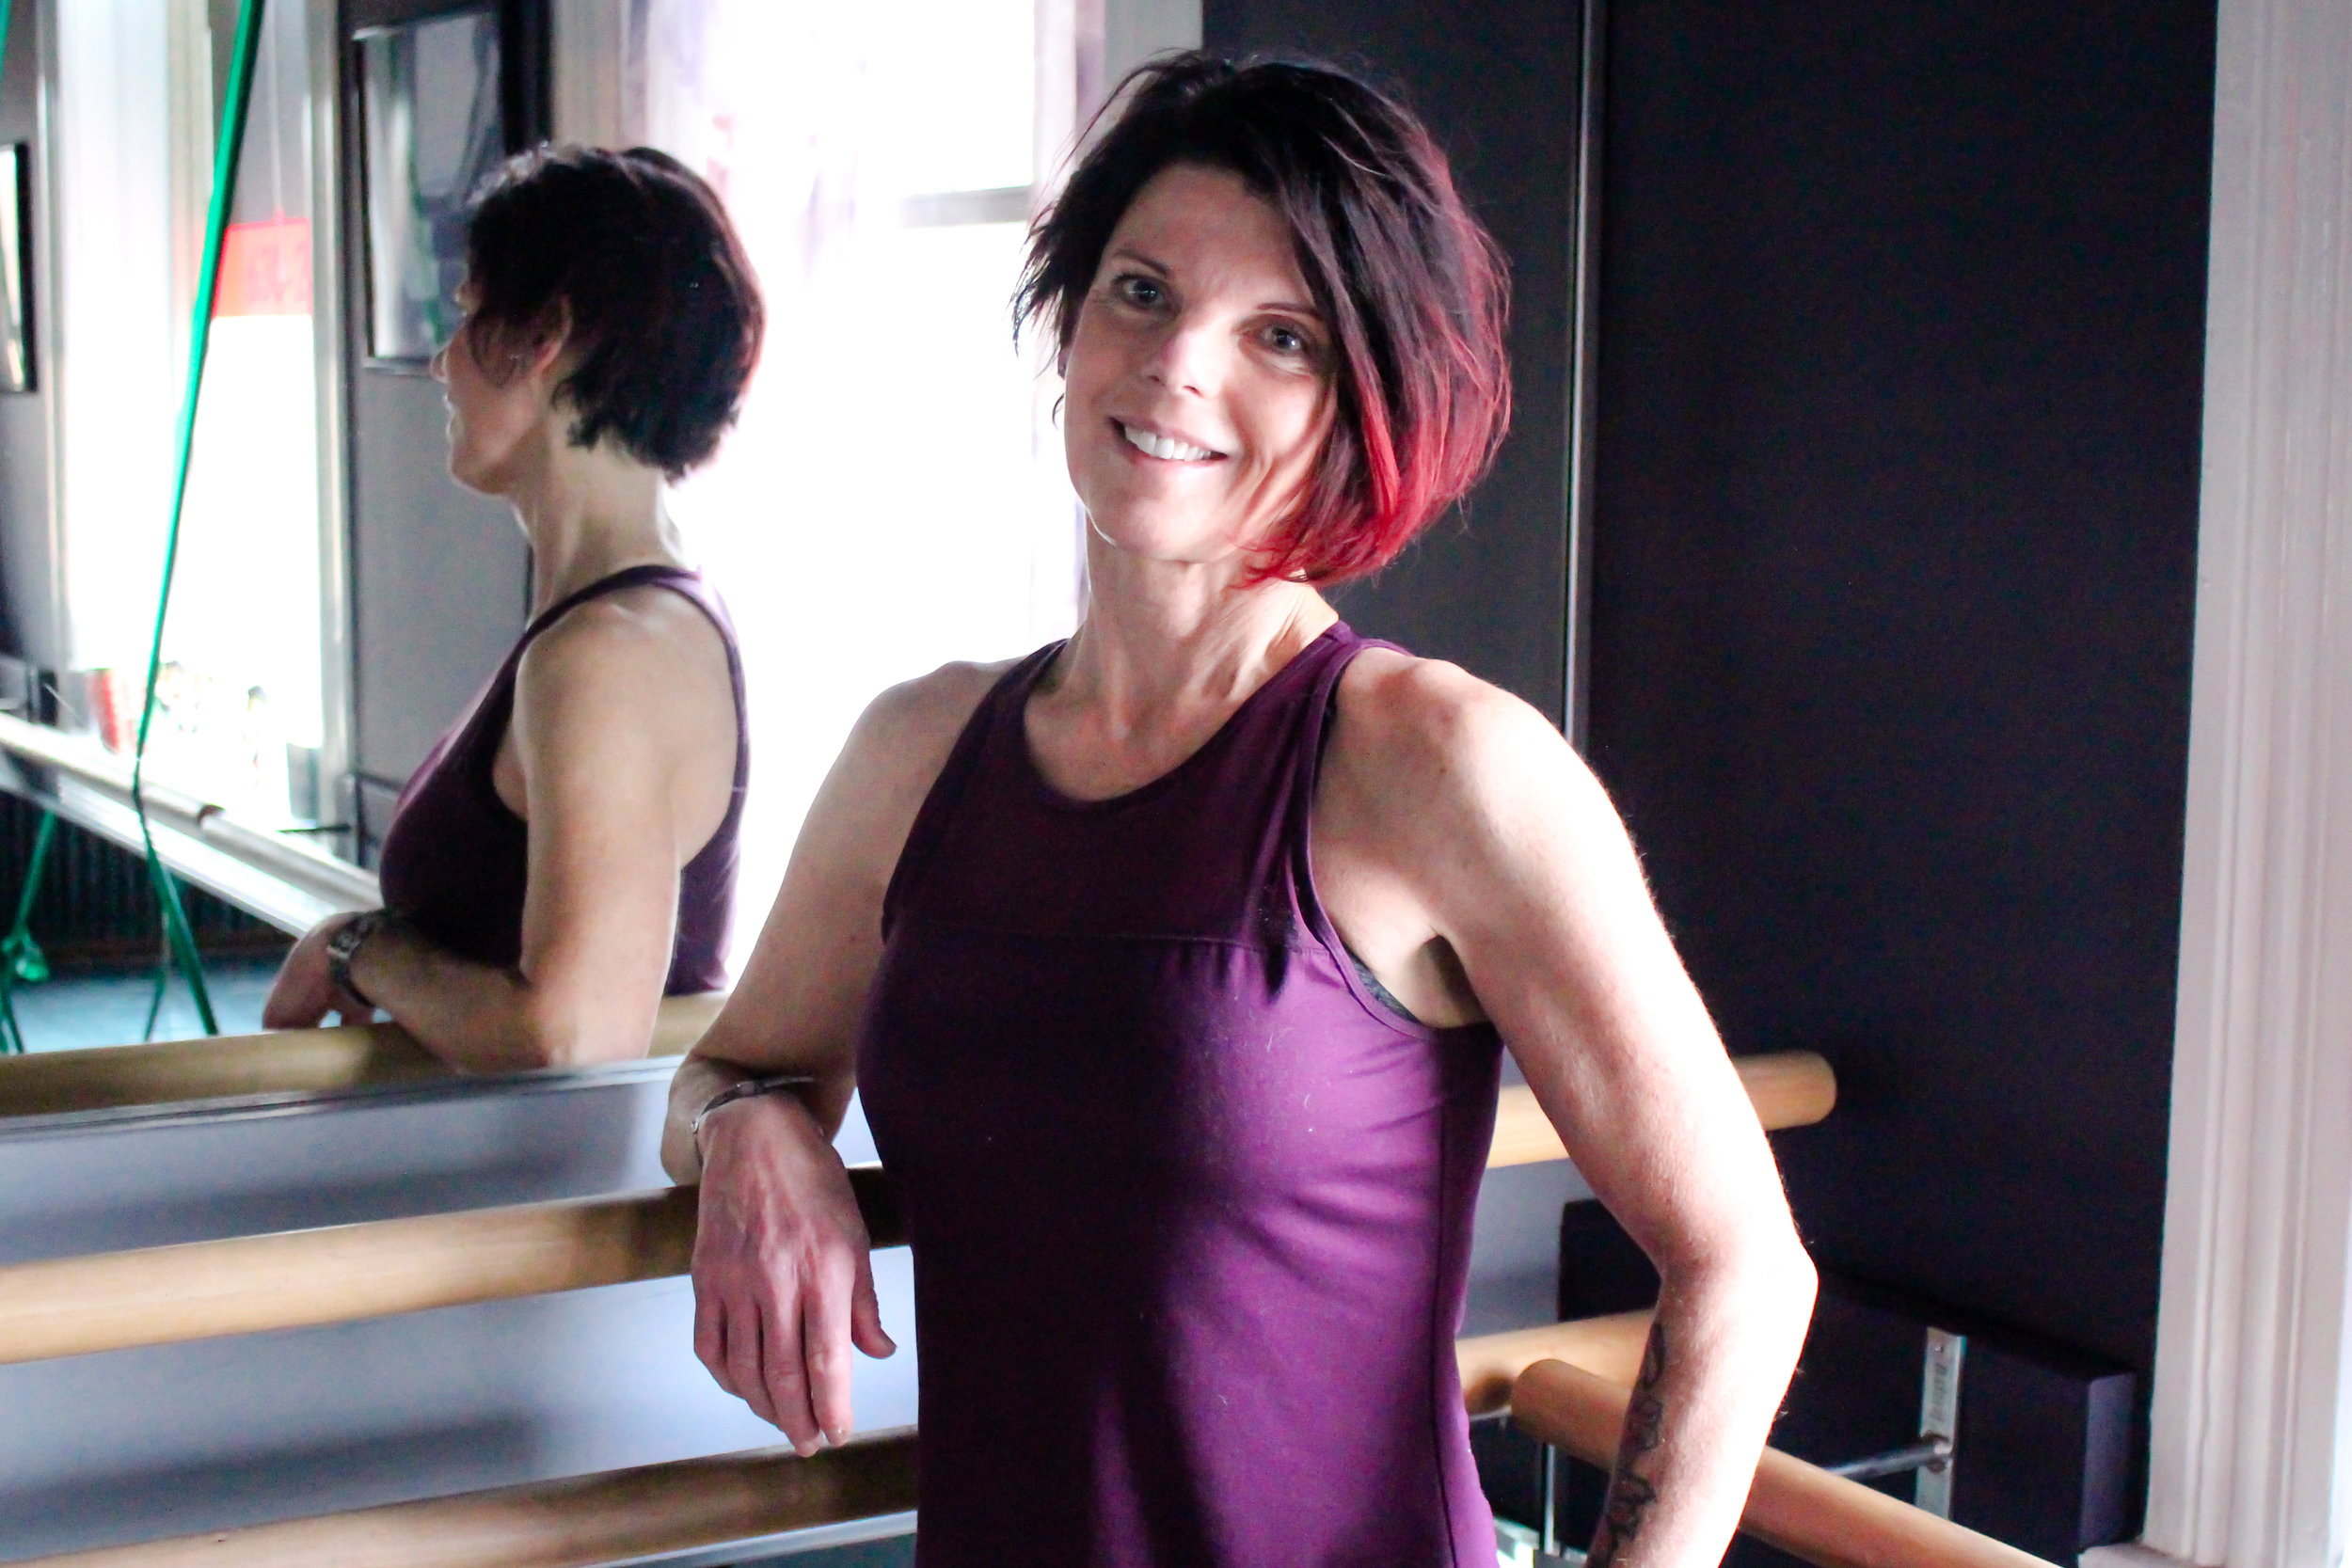 "DAWN CHURNEY   Dawn has over 20 years of teaching experience and is AFAA Group Fitness, Pilates, Piloxing, WERQ, Barre Connect, and Zumba Certified. She became an instructor for the purpose of helping people feel better mentally and physically, and her favorite part of teaching is seeing client's reactions to their results! To her, ""it's all good""!"